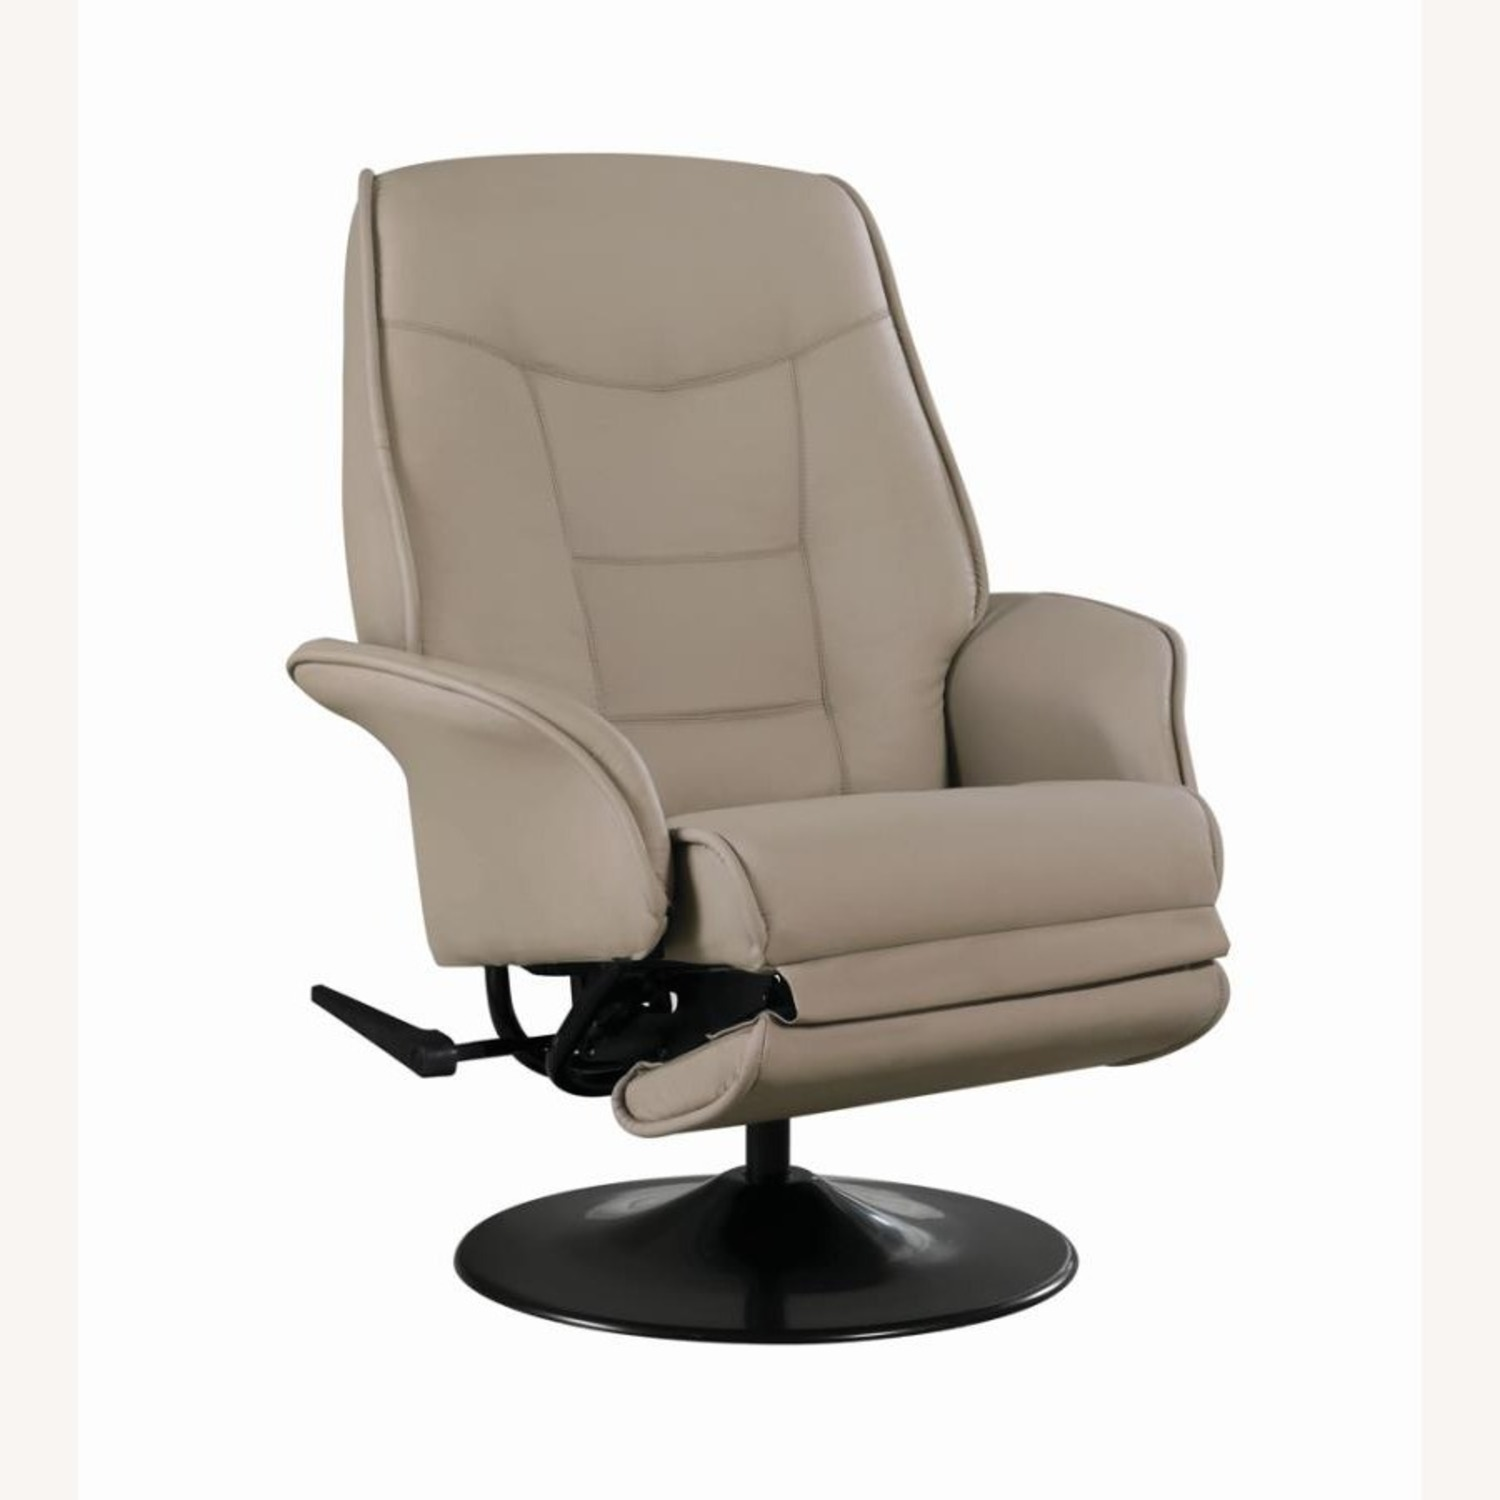 Swivel Recliner In Classic Beige Leatherette - image-0